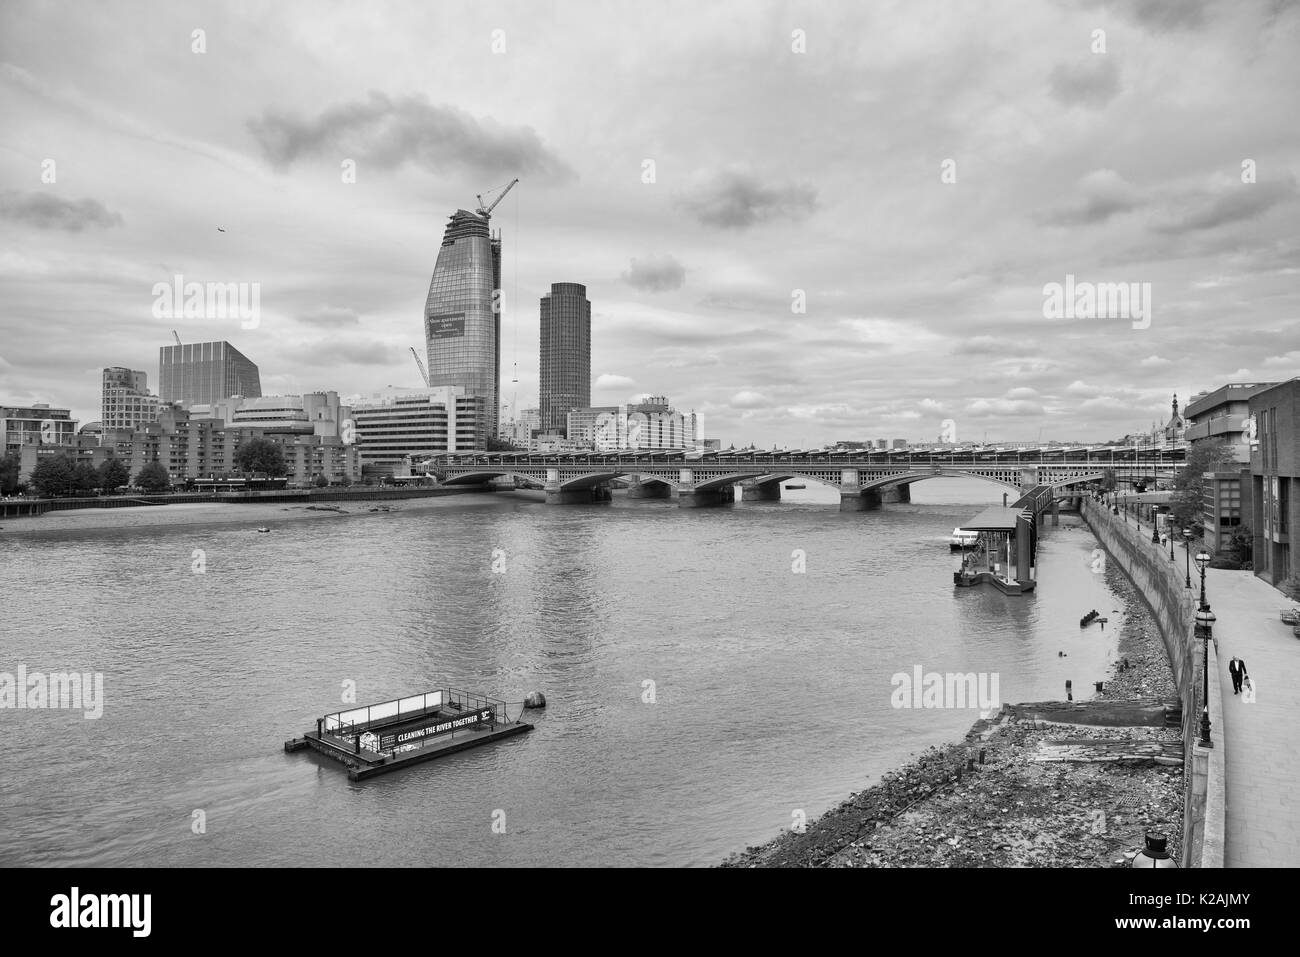 View of the River Thames and London Blackfriars station and One Blackfrairs tower Stock Photo